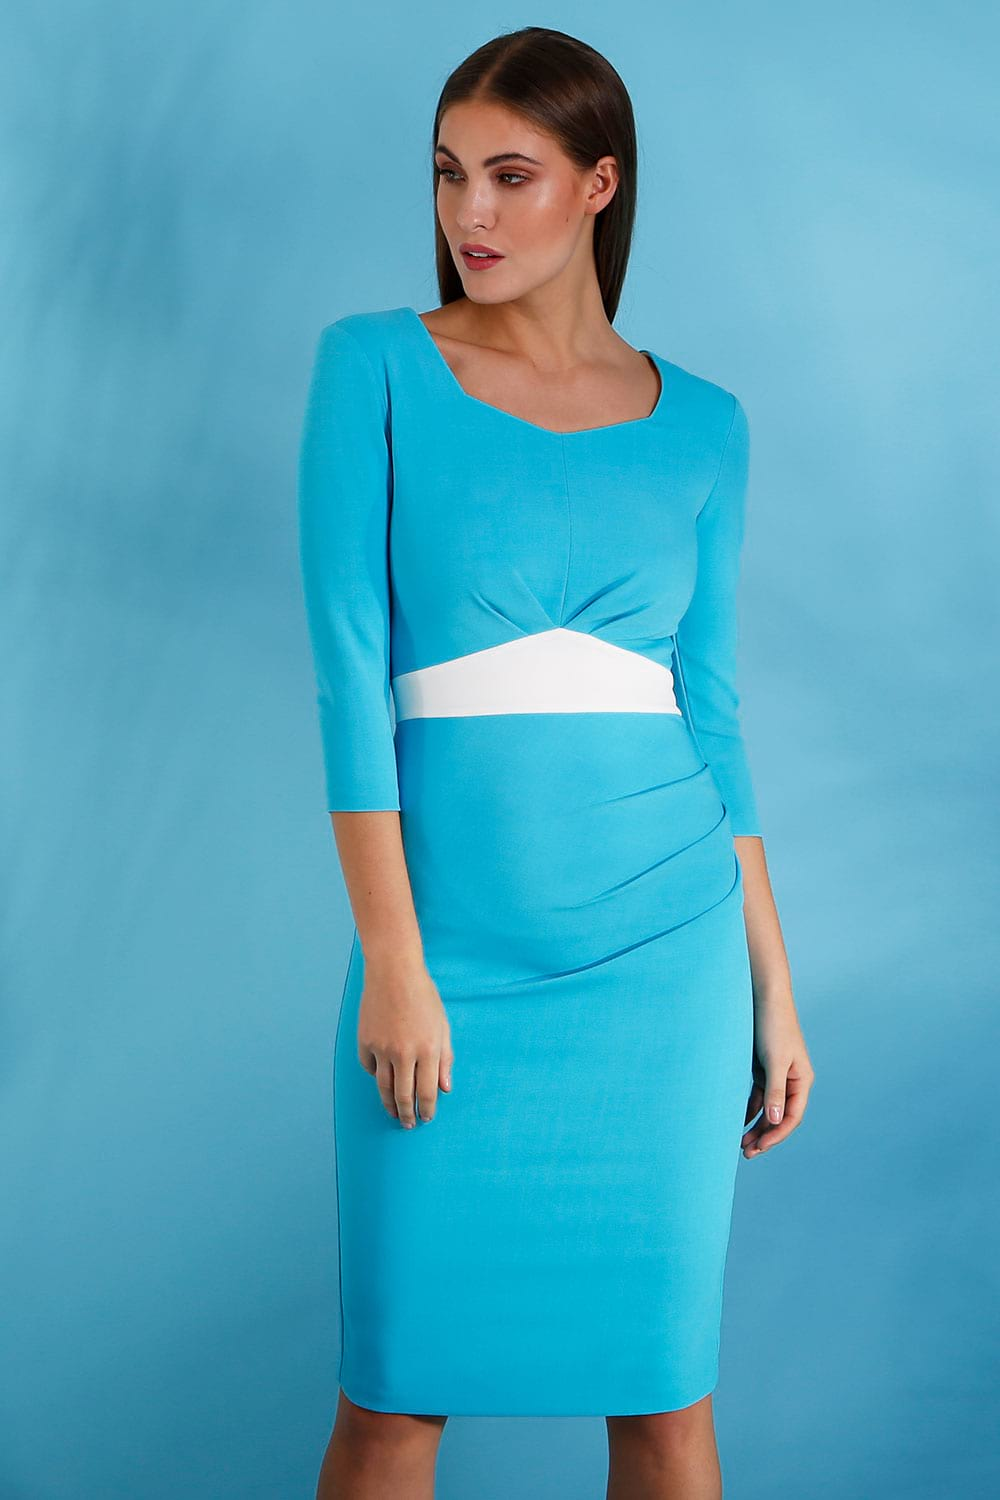 Hybrid Fashion 1283 Leona Crepe Pencil Dress